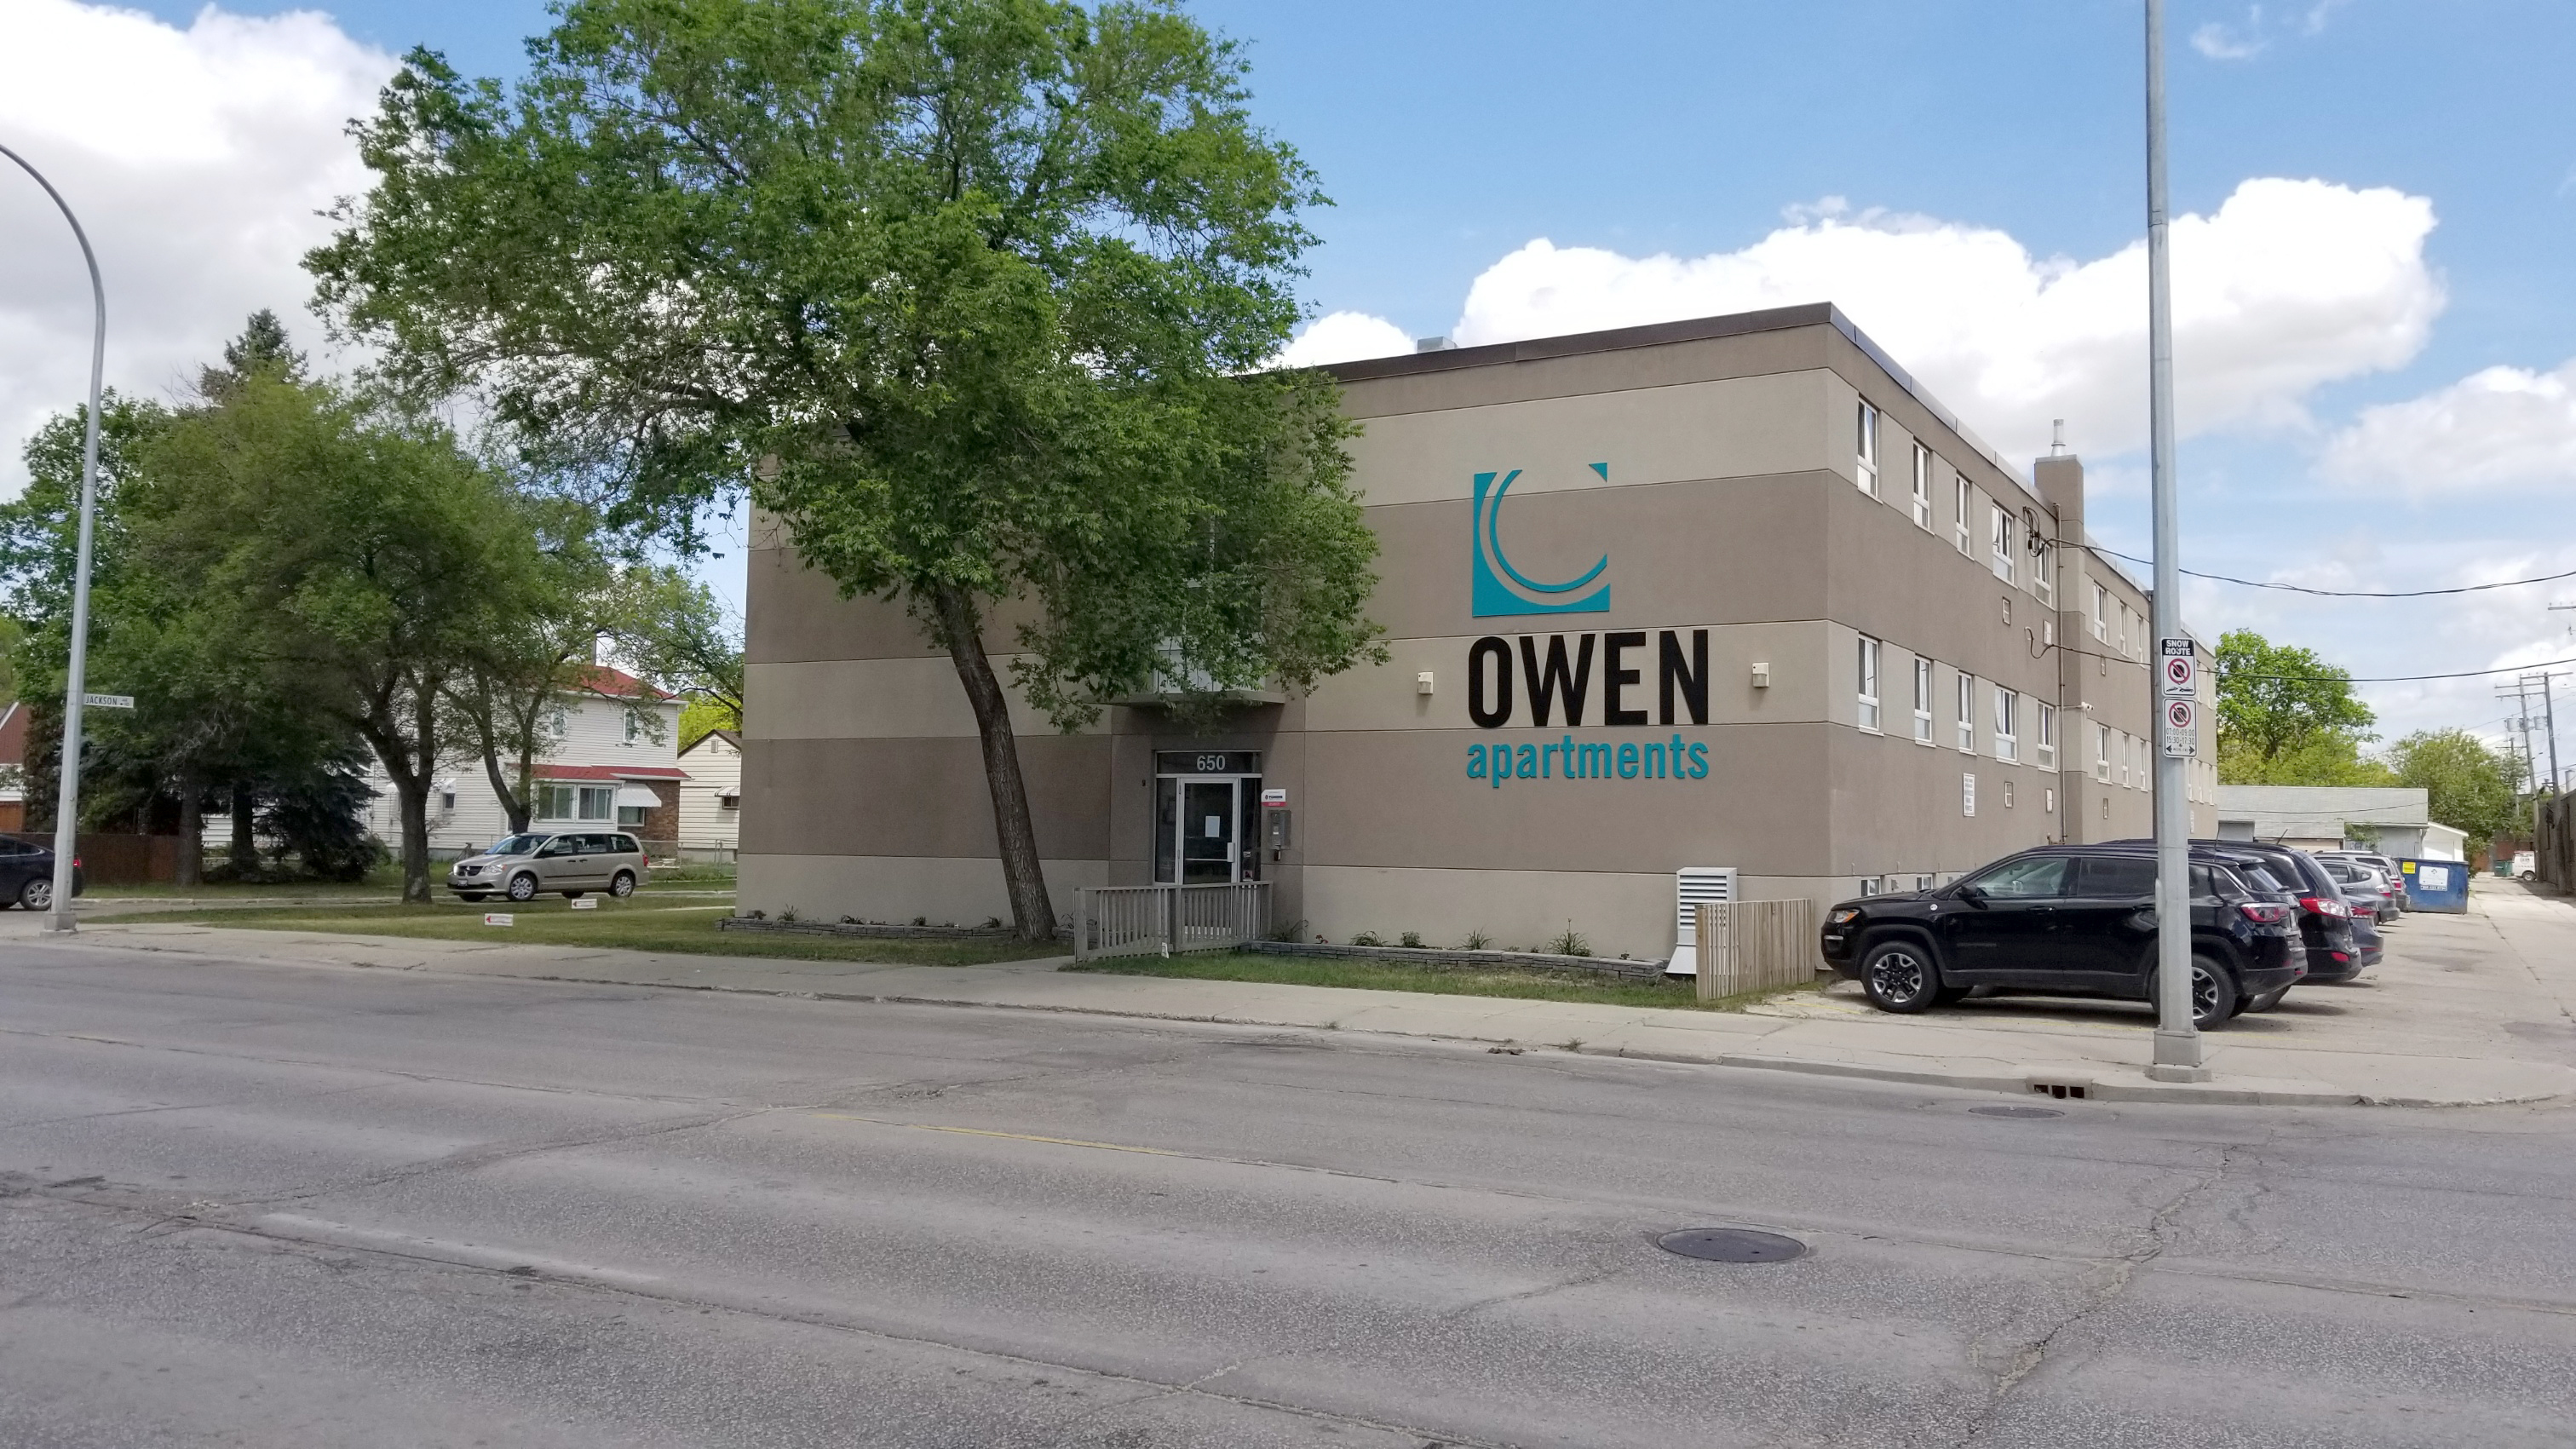 Towers Realty Group - Owen Apartments - 650 Stafford Street - exterior